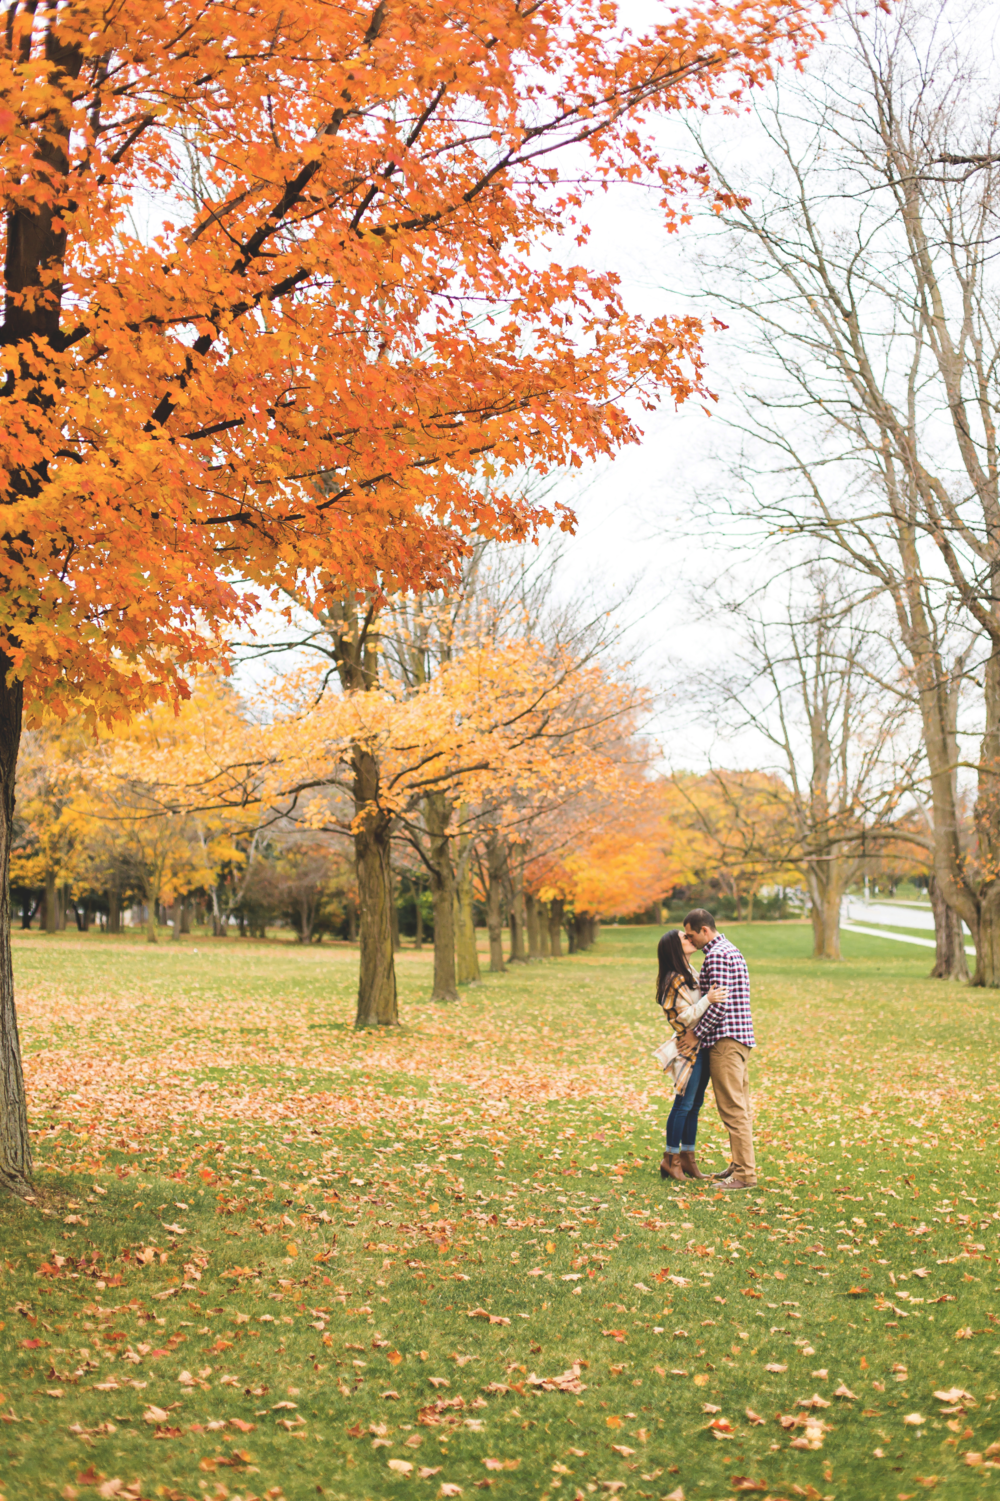 Engagement-Photography-Guelph-University-Campus-Hamilton-Burlington-Oakville-Niagara-Toronto-Wedding-Photographer-Photo-Image-16.png